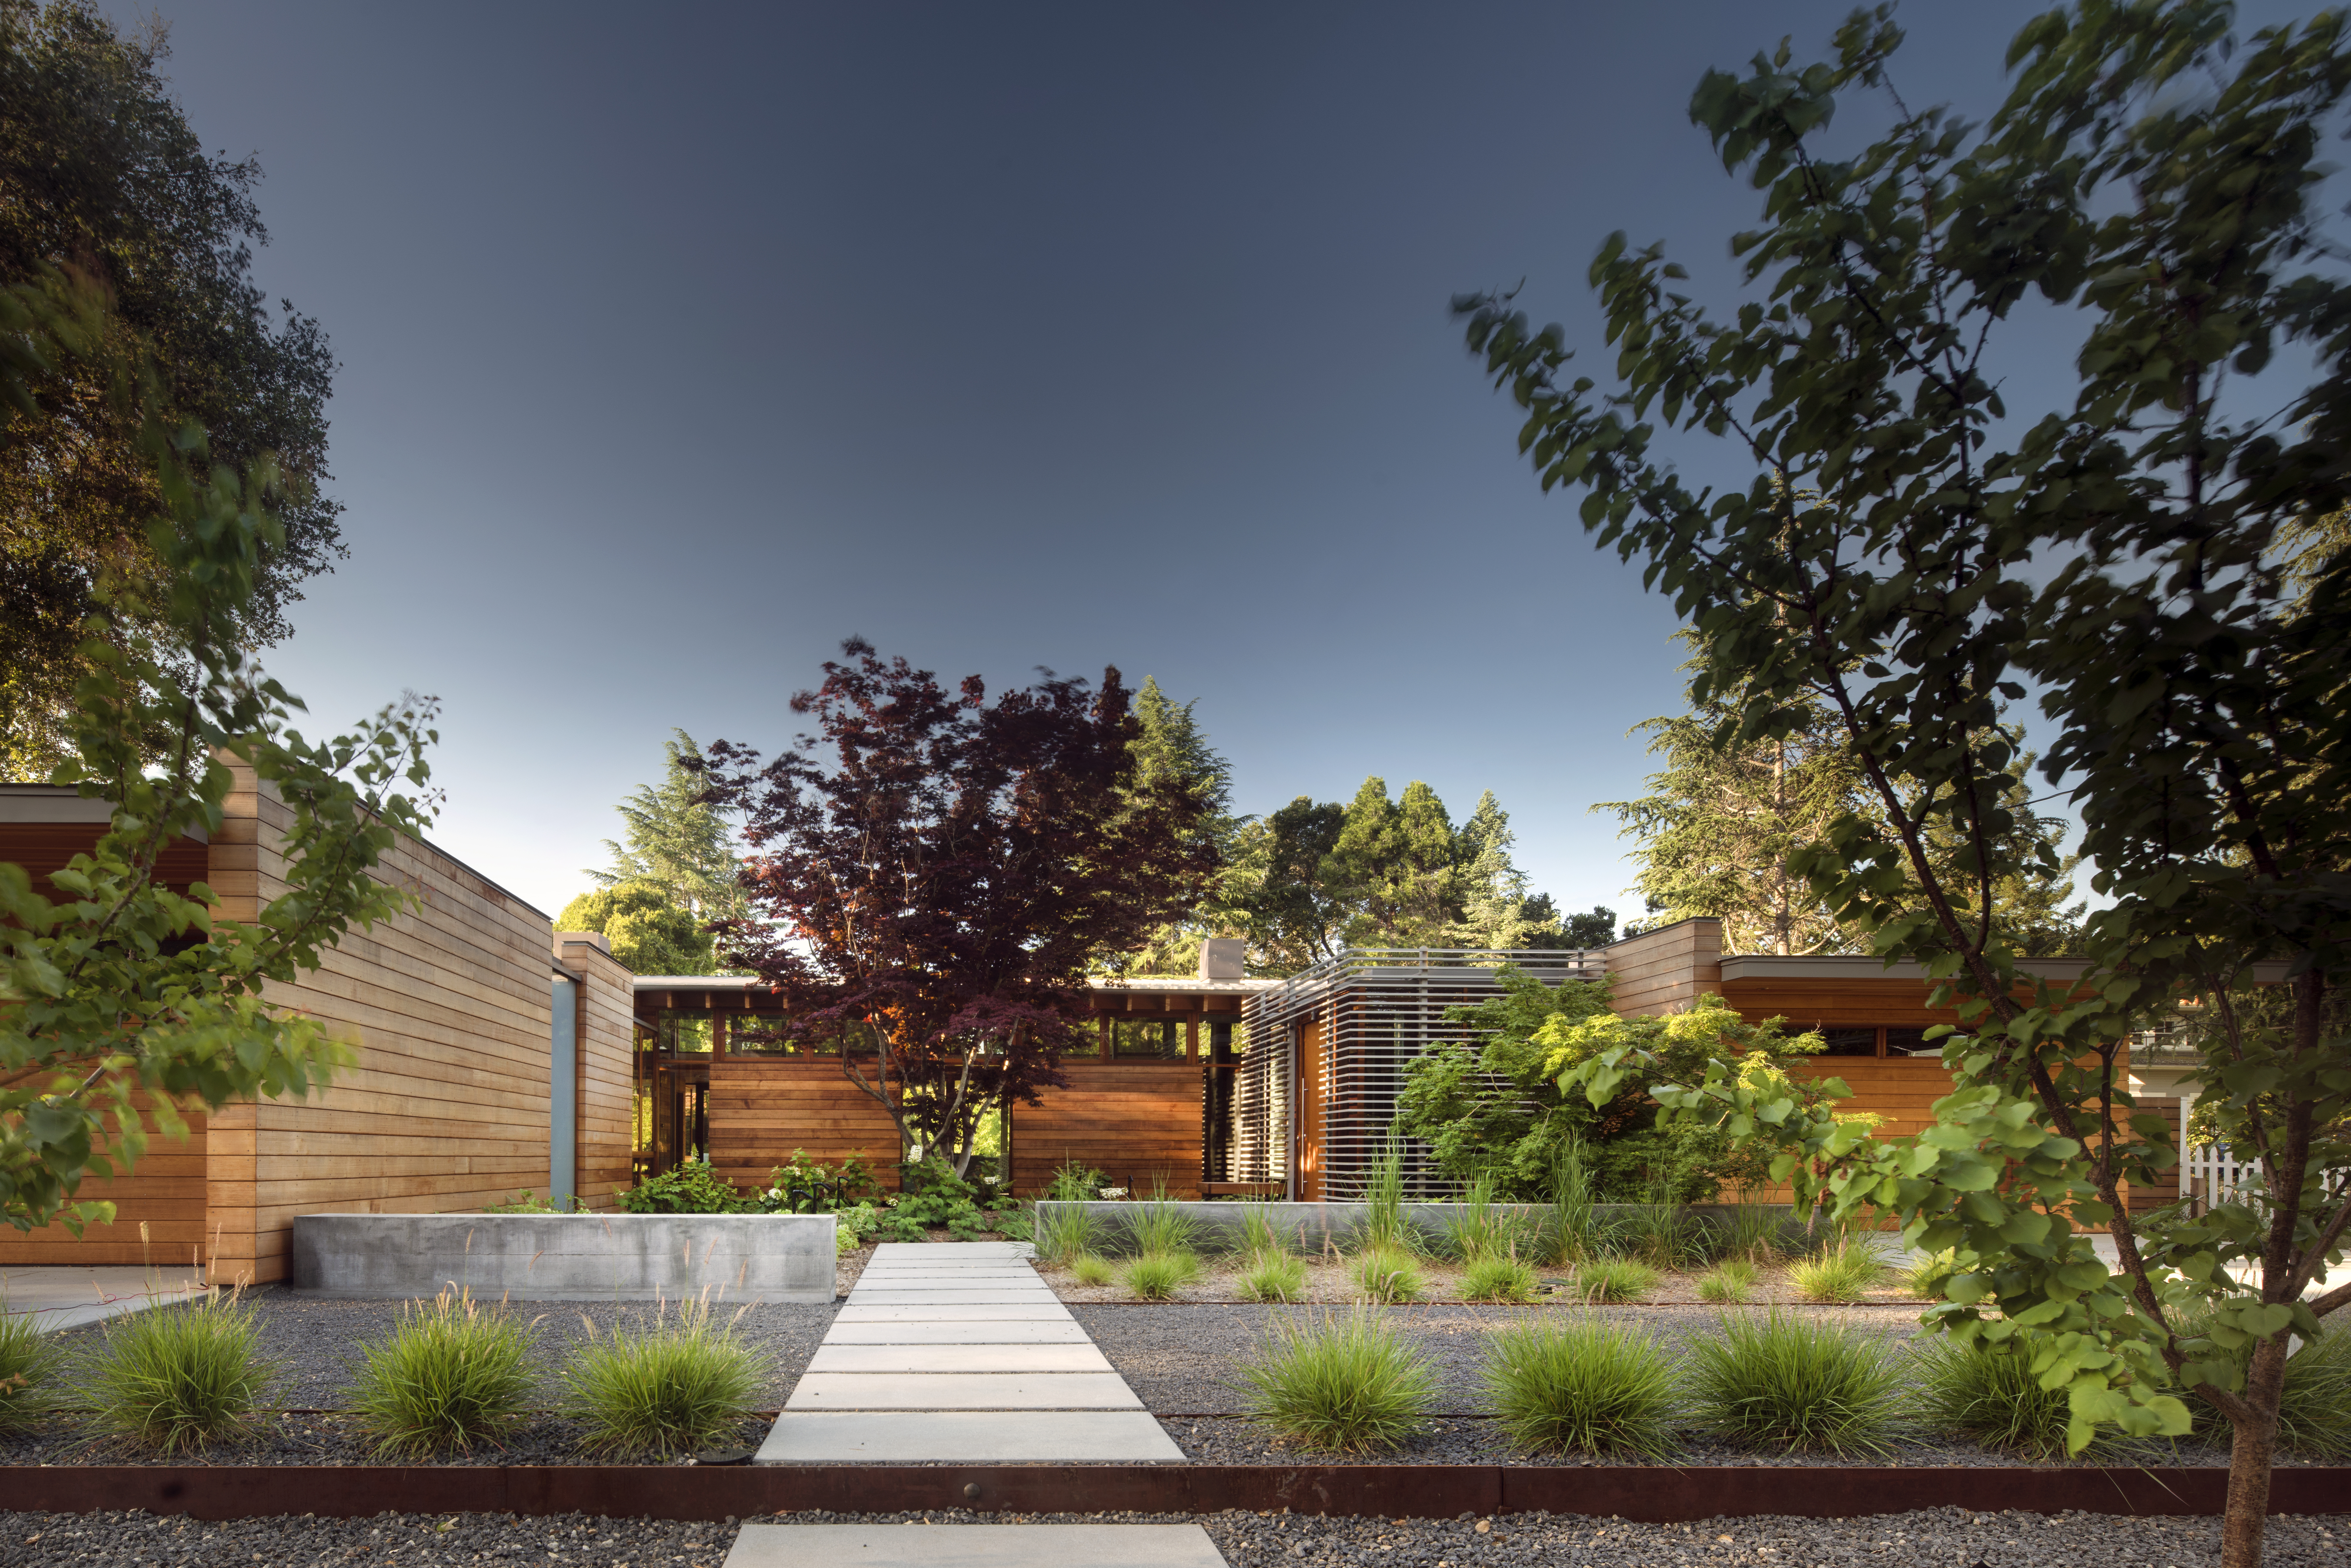 AIA 2017 Housing Awards: The country\u0027s best new homes - Curbed